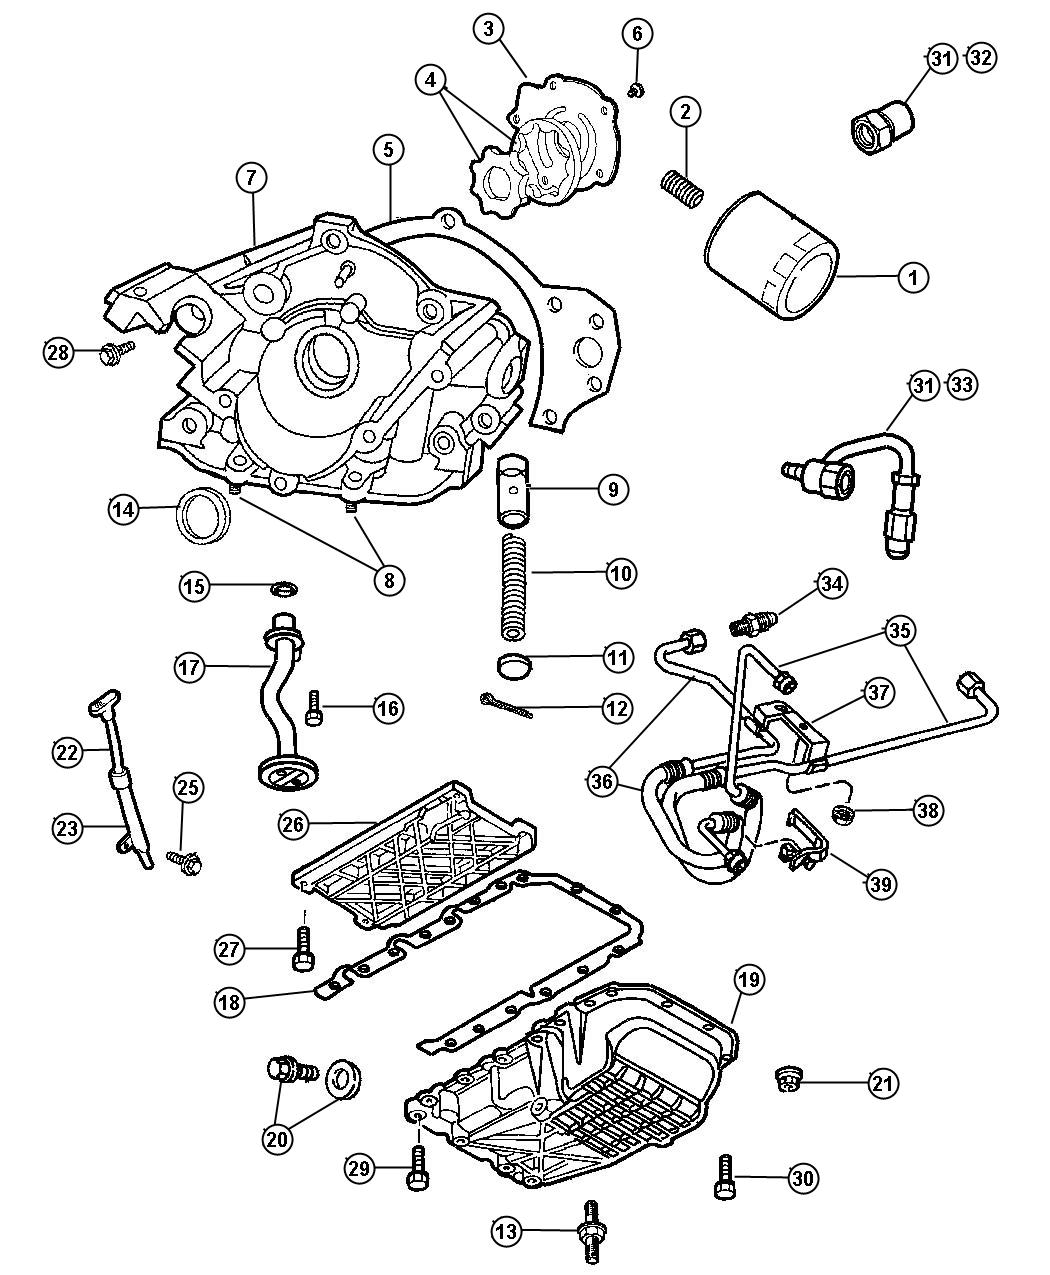 2001 dodge durango brake light wiring diagram wiring diagram 1998 dodge stratus engine html